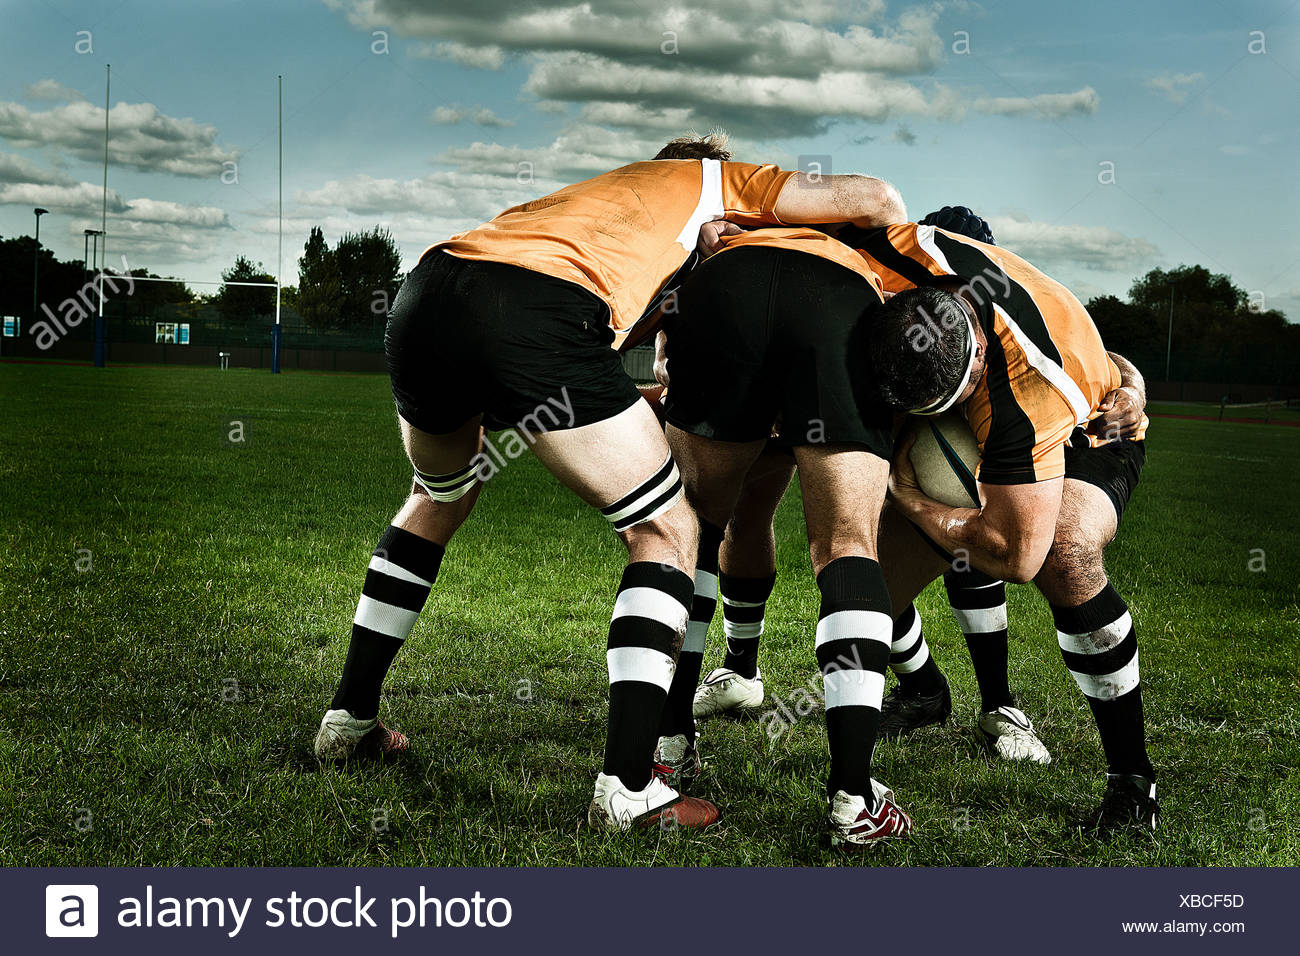 Rugby players in scrum on pitch - Stock Image